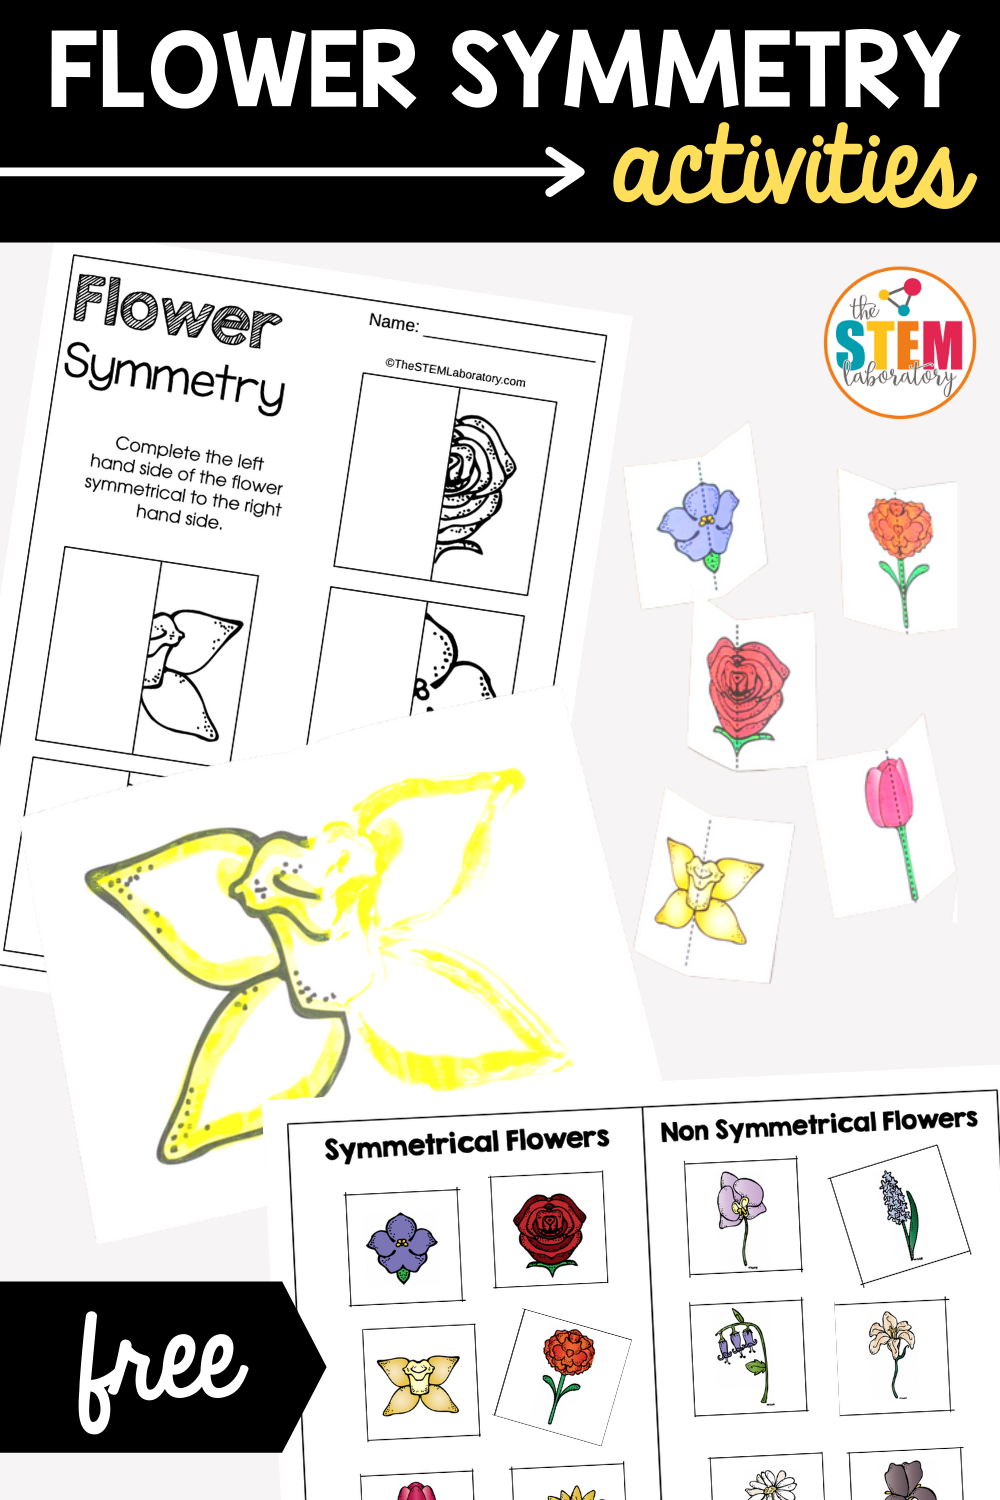 Flower Symmetry Activities